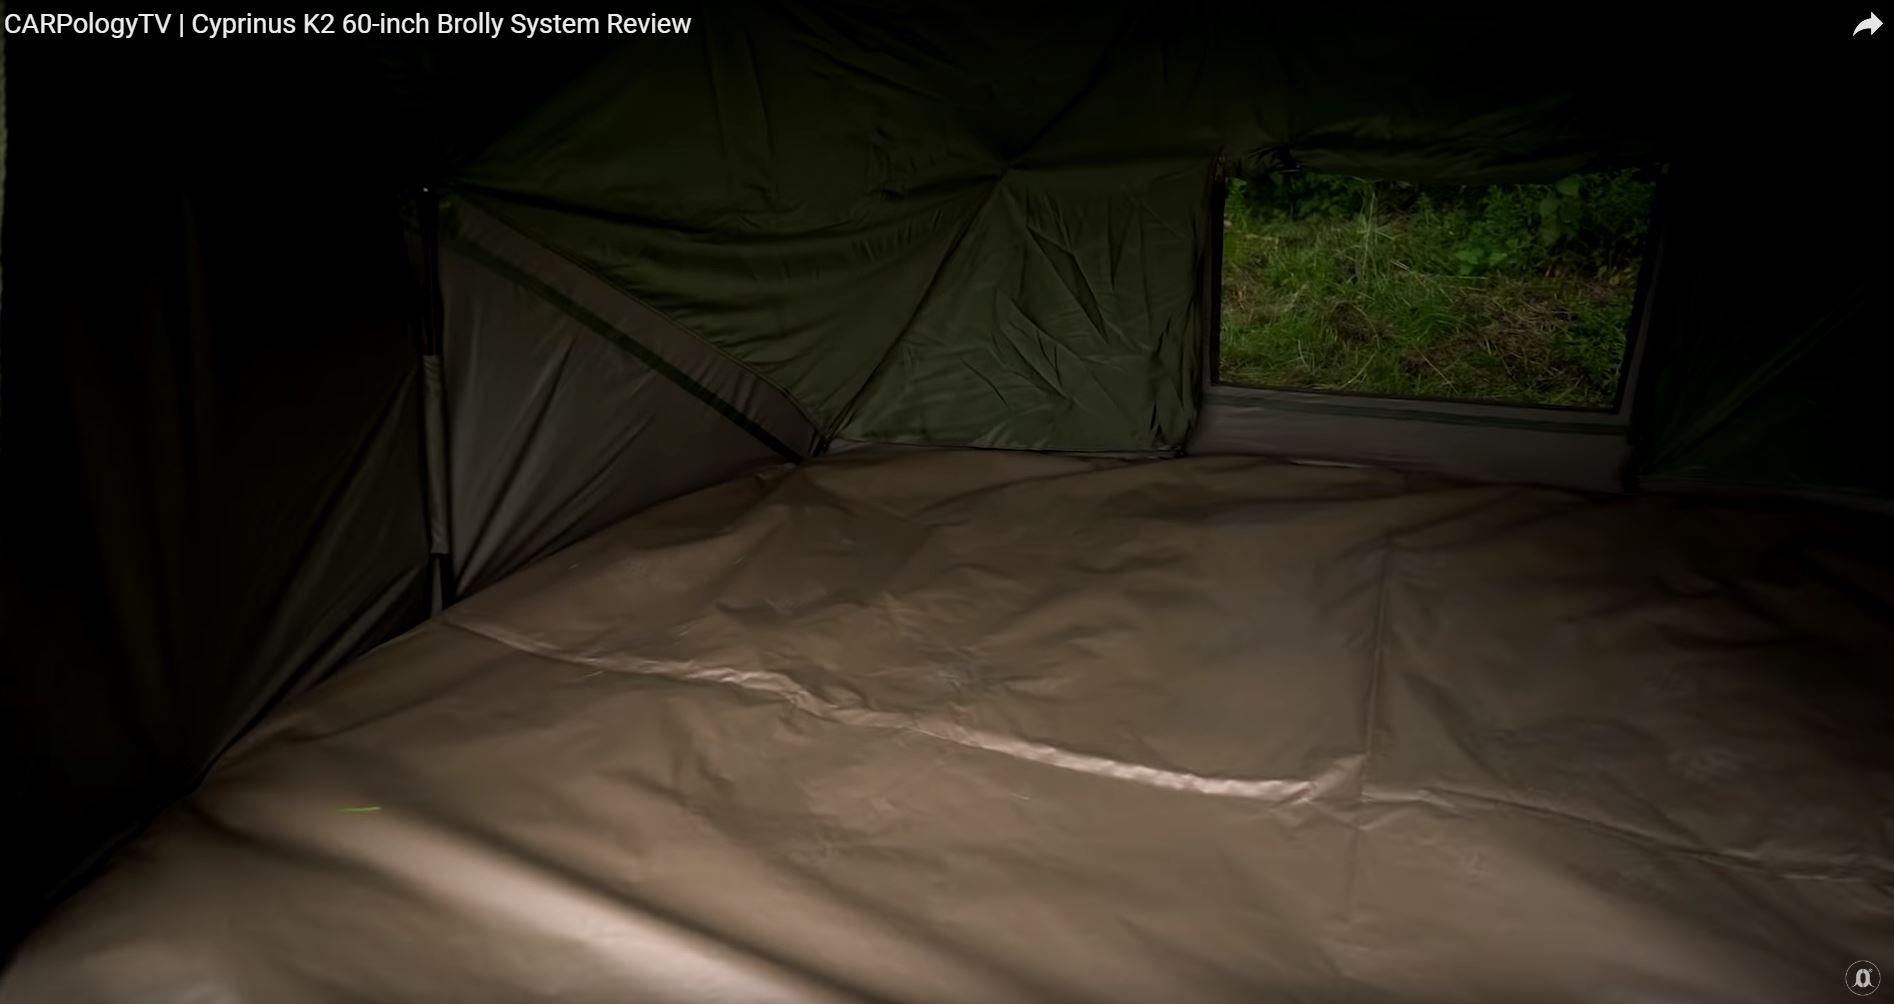 Cyprinus K2 60 Brolly System for Session Carp Fishing 20,000 HH EU Version